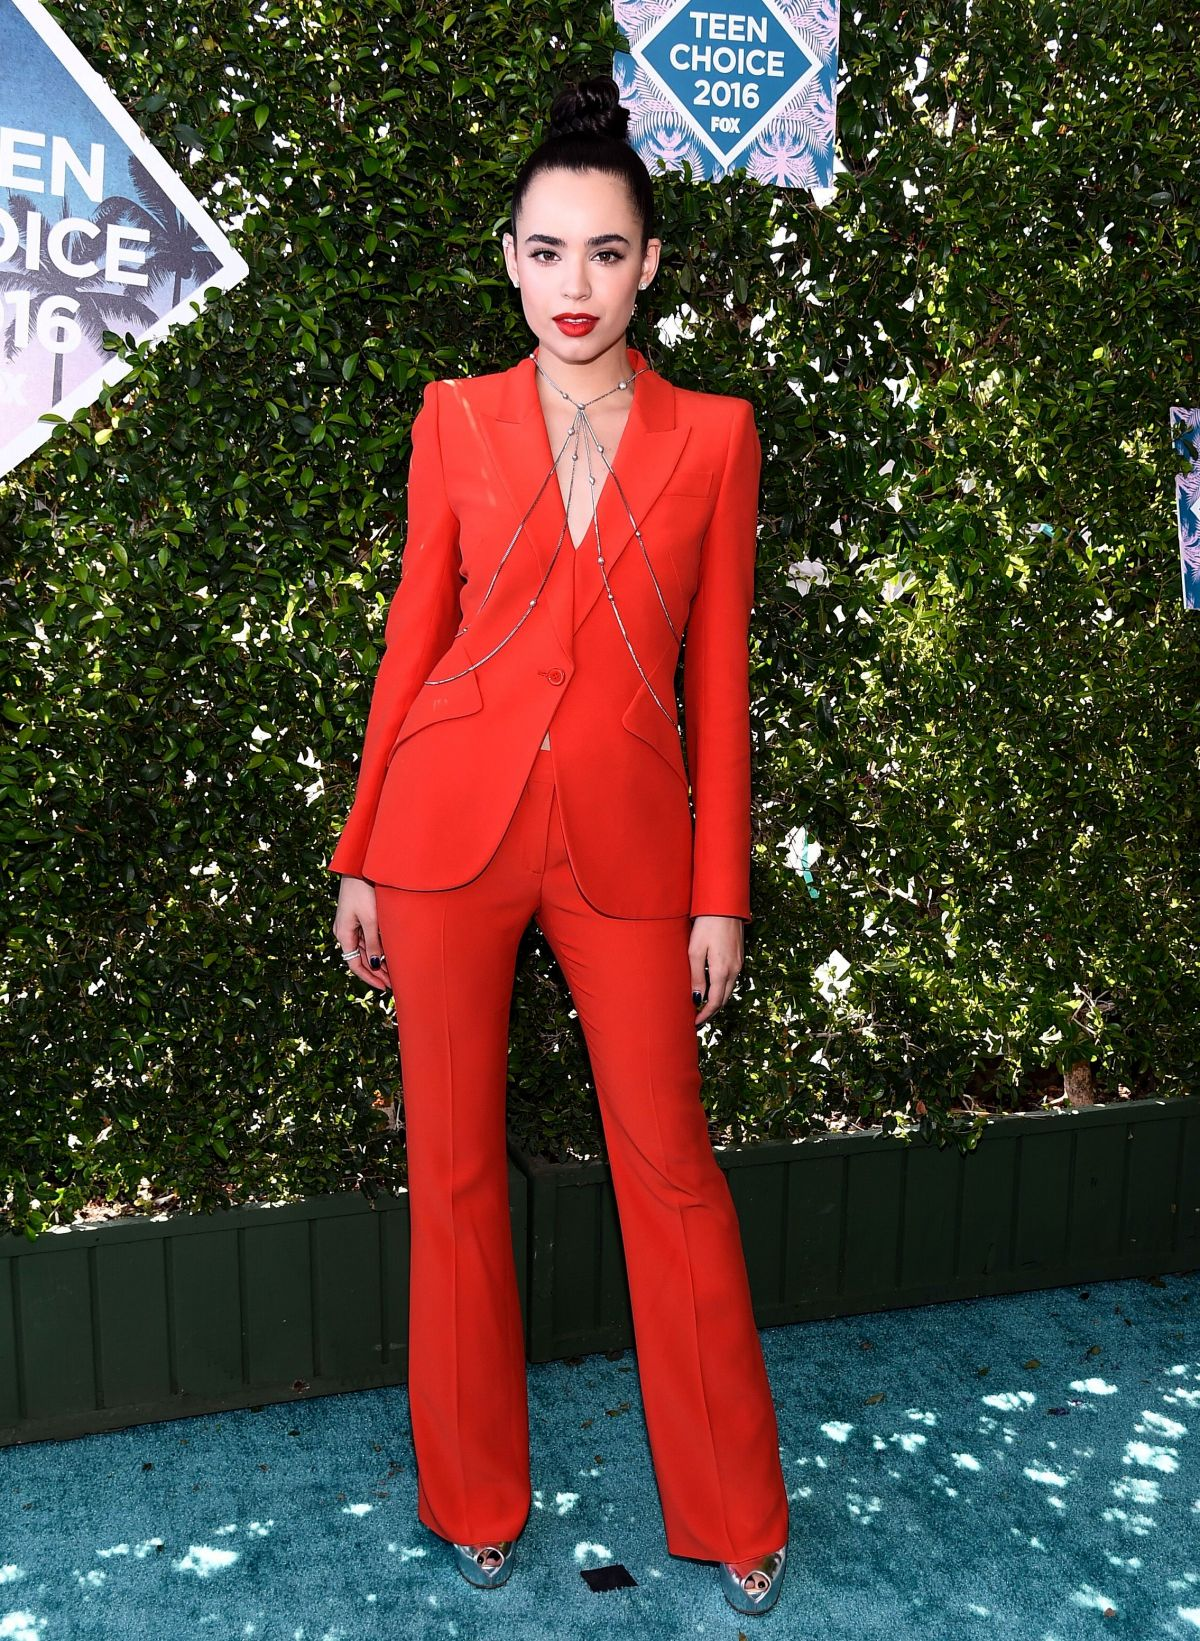 SOFIA CARSON at Teen Choice Awards 2016 in Inglewood 07/31/2016